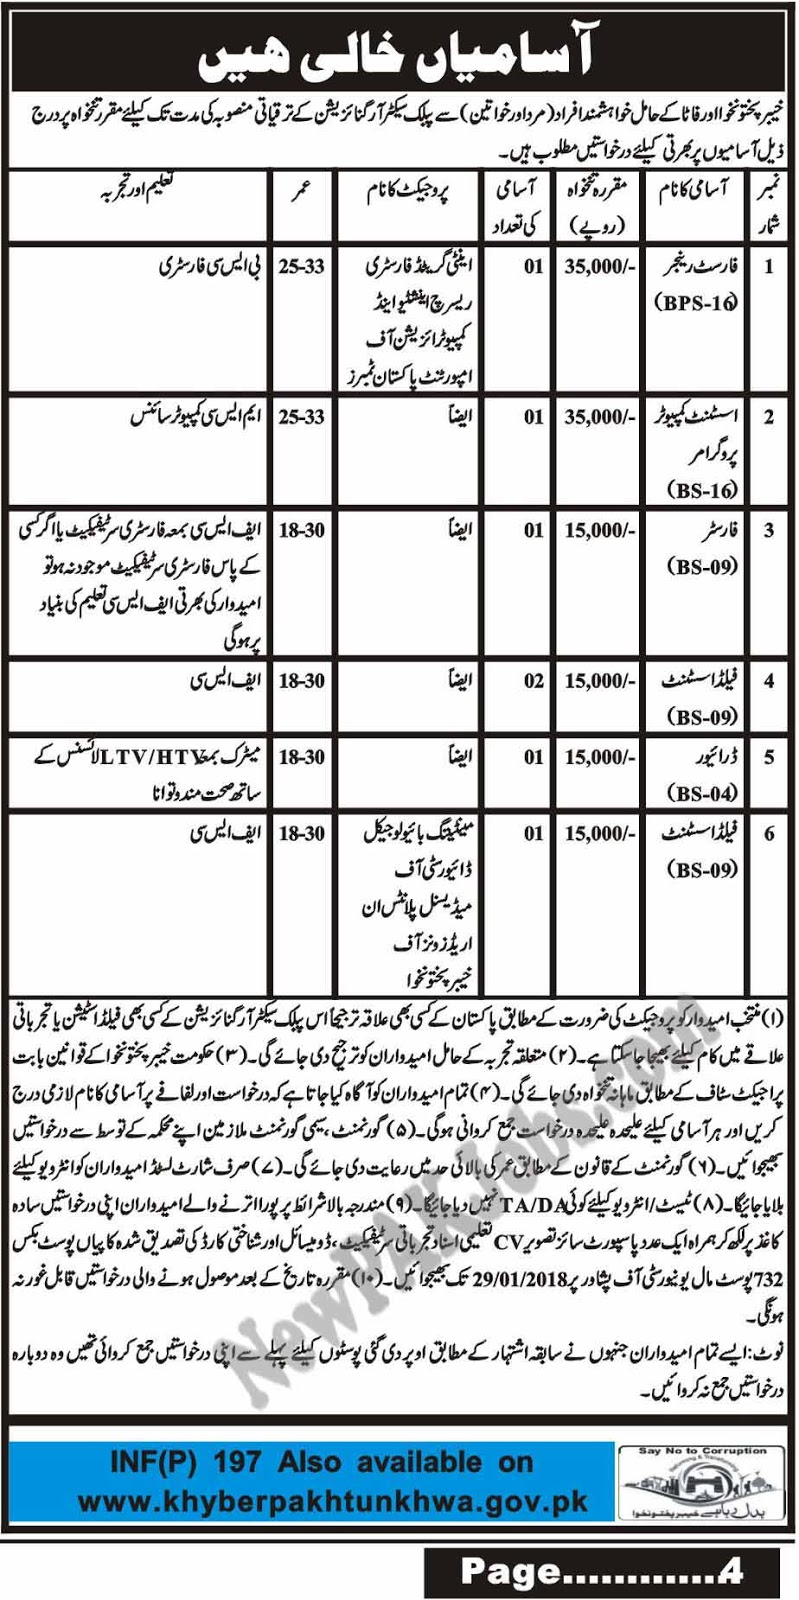 Latest Jobs for Men and Women of FATA and Khyber Pakhtunkhwa 16 Jan 2018